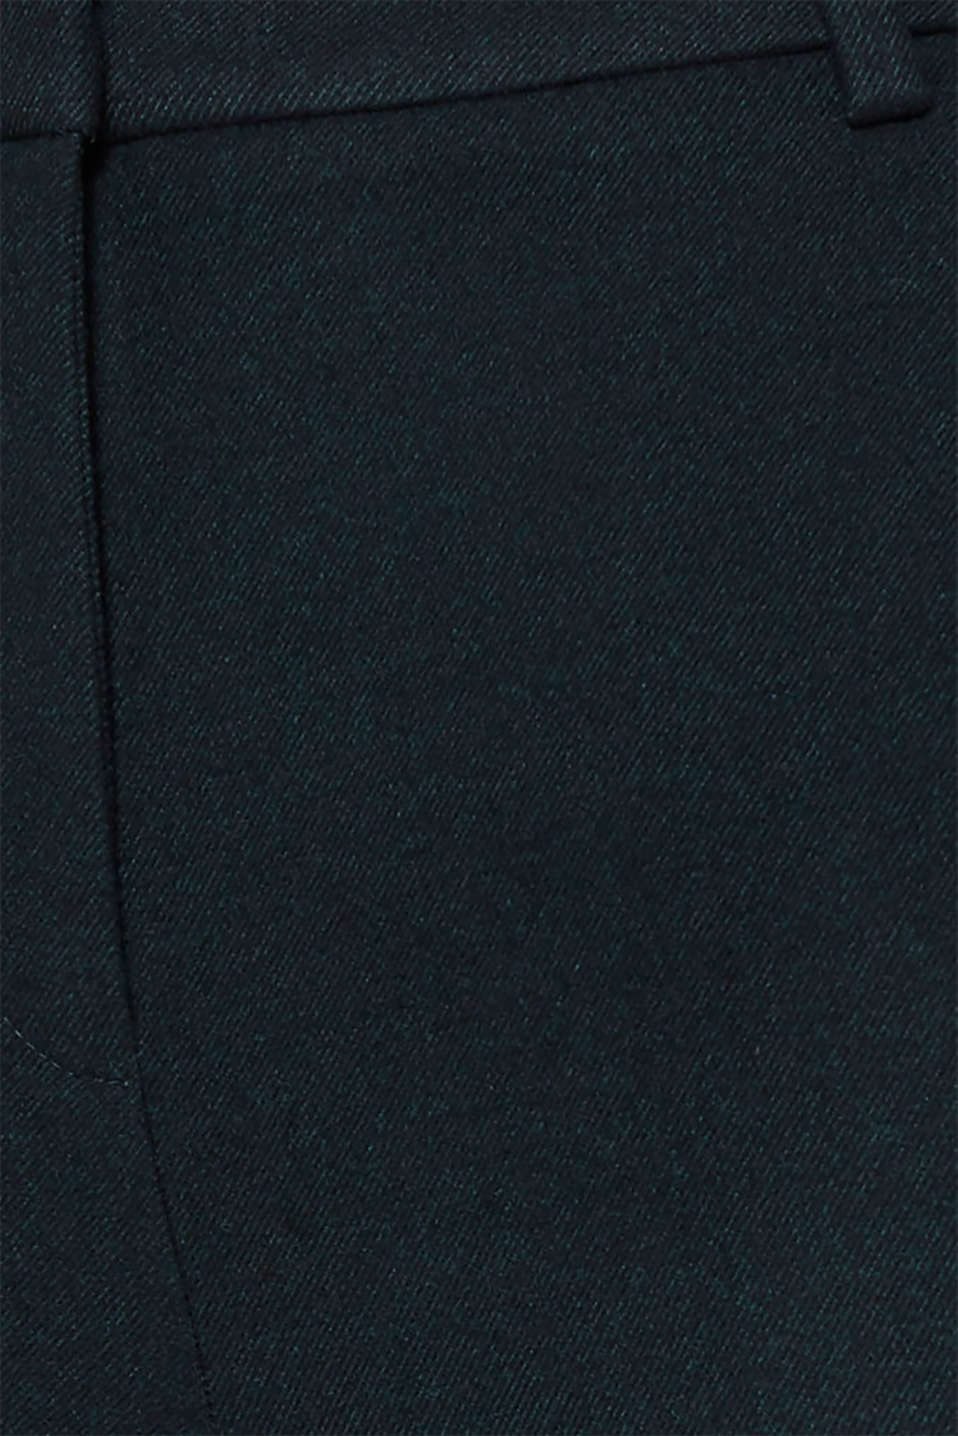 Flannel trousers with stretch for comfort, DARK TEAL GREEN, detail image number 4